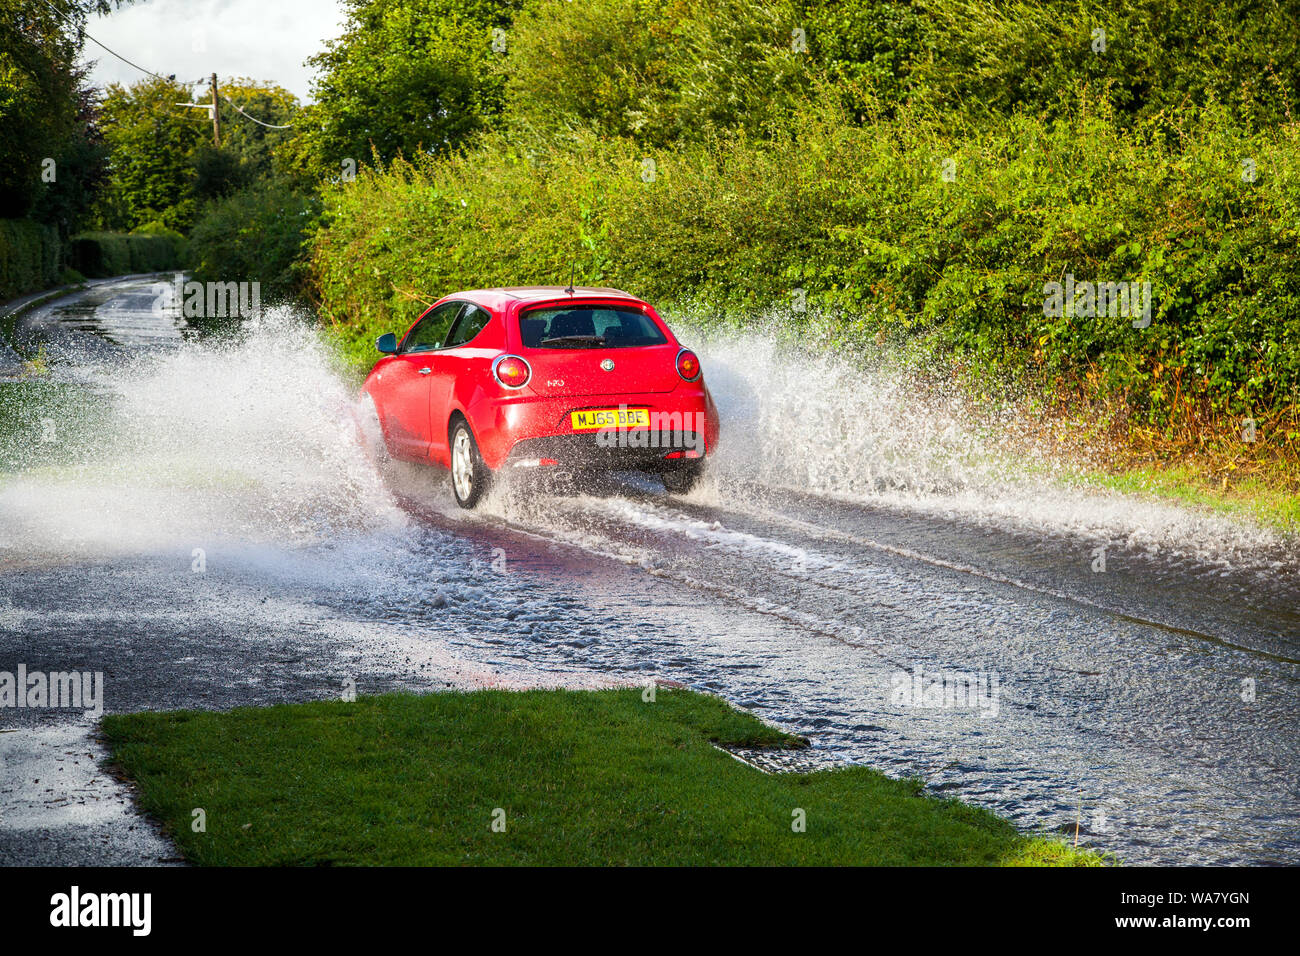 Car driving through water along a flooded country road / lane during wet weather after a heavy rain storm Stock Photo